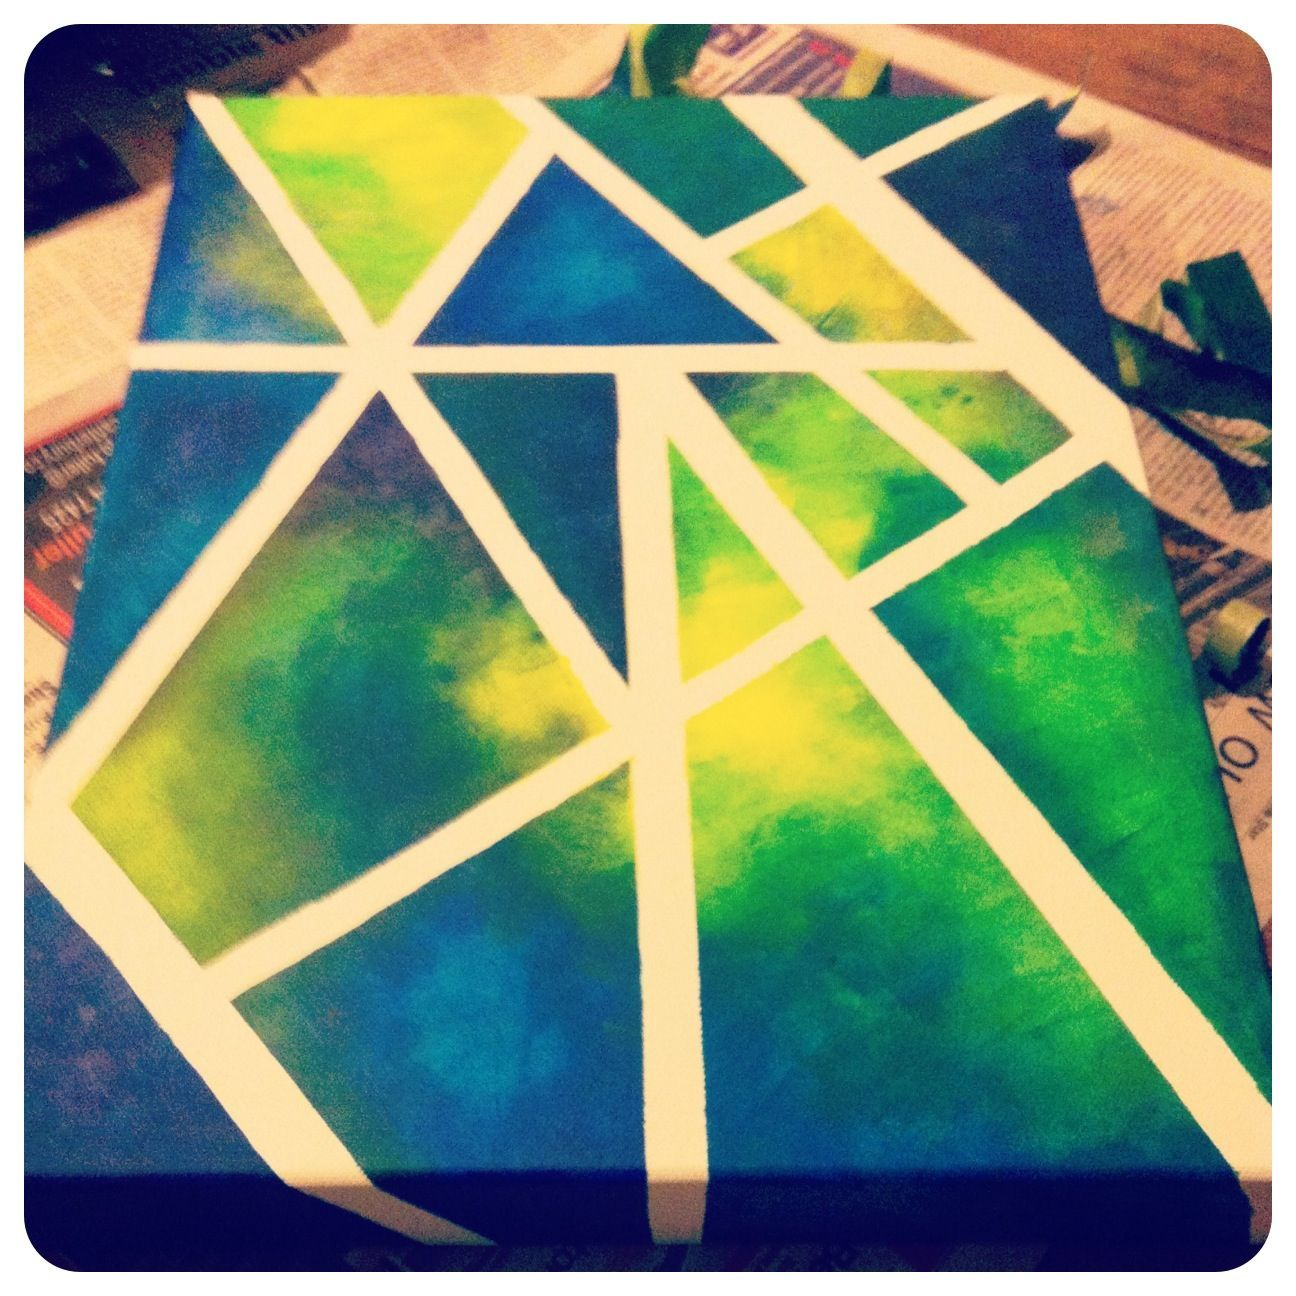 15 Great Diy Projects Made With Sponges Diy Canvas Art Easy Colorful Canvas Art Tape Art